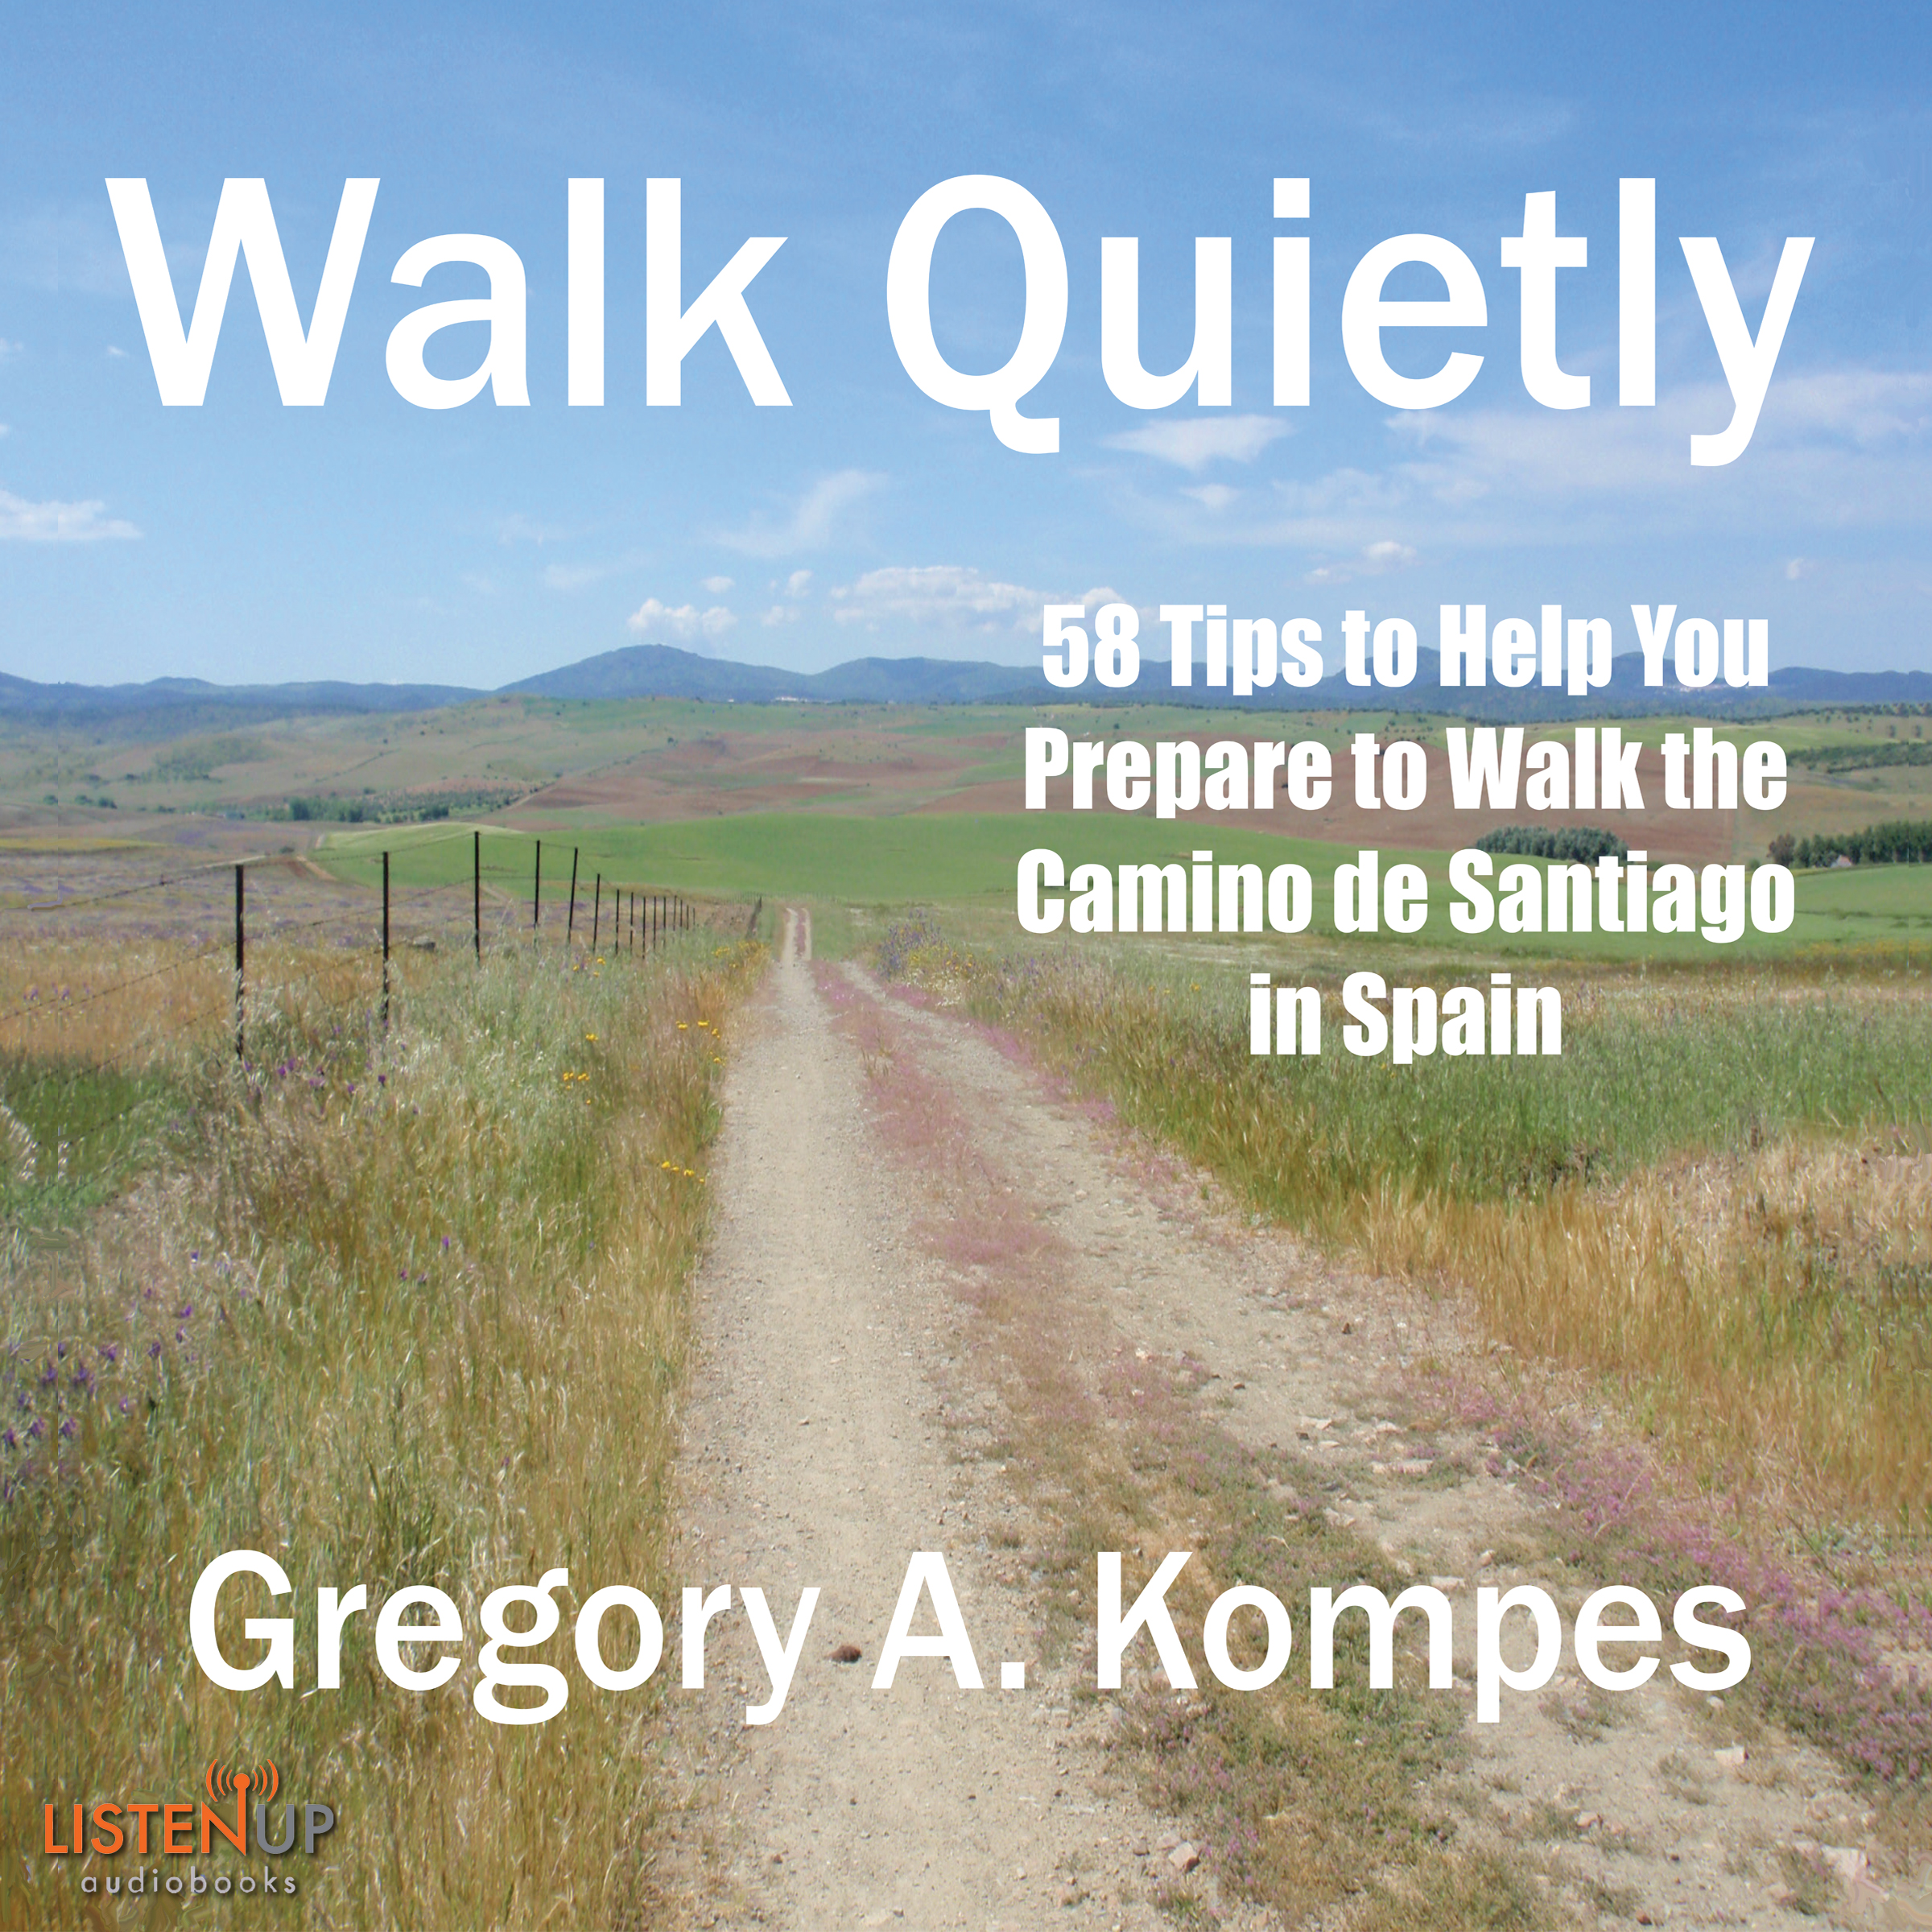 Walk Quietly